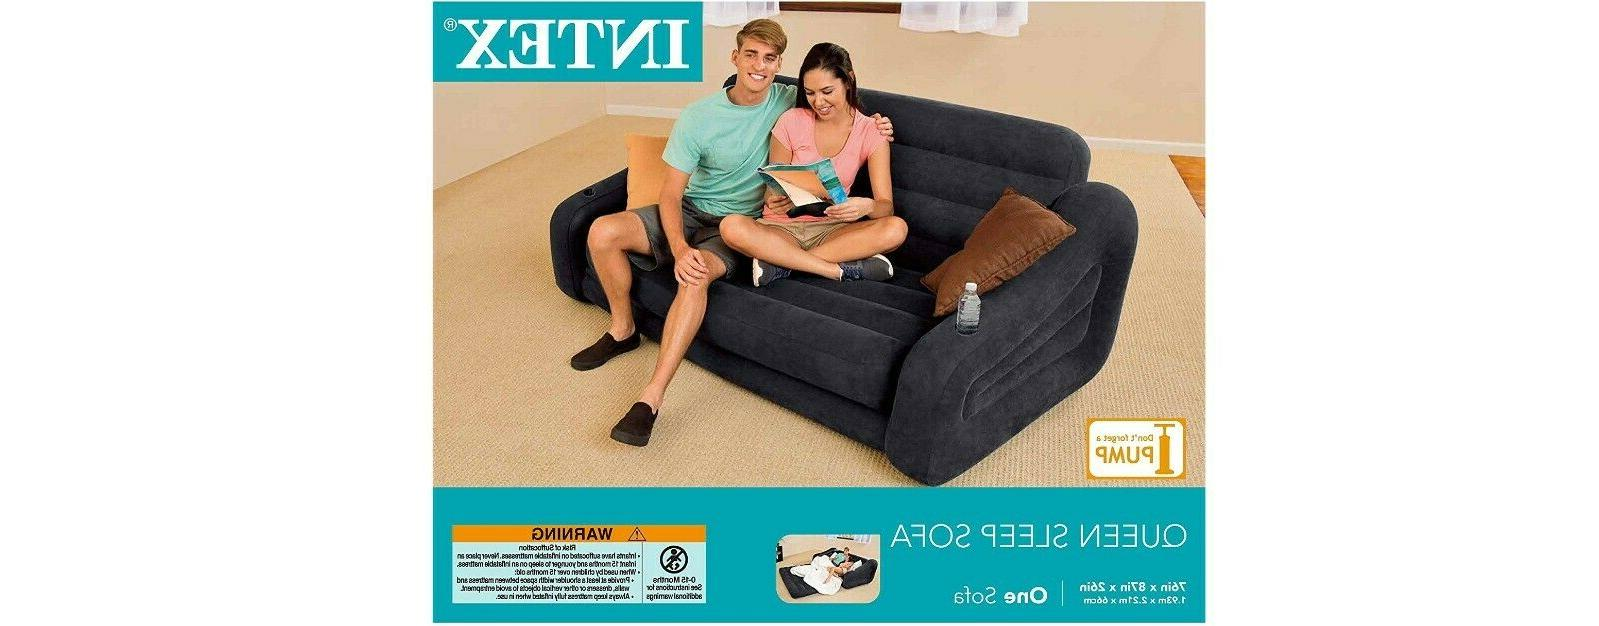 Couch Sleeper Room Furniture